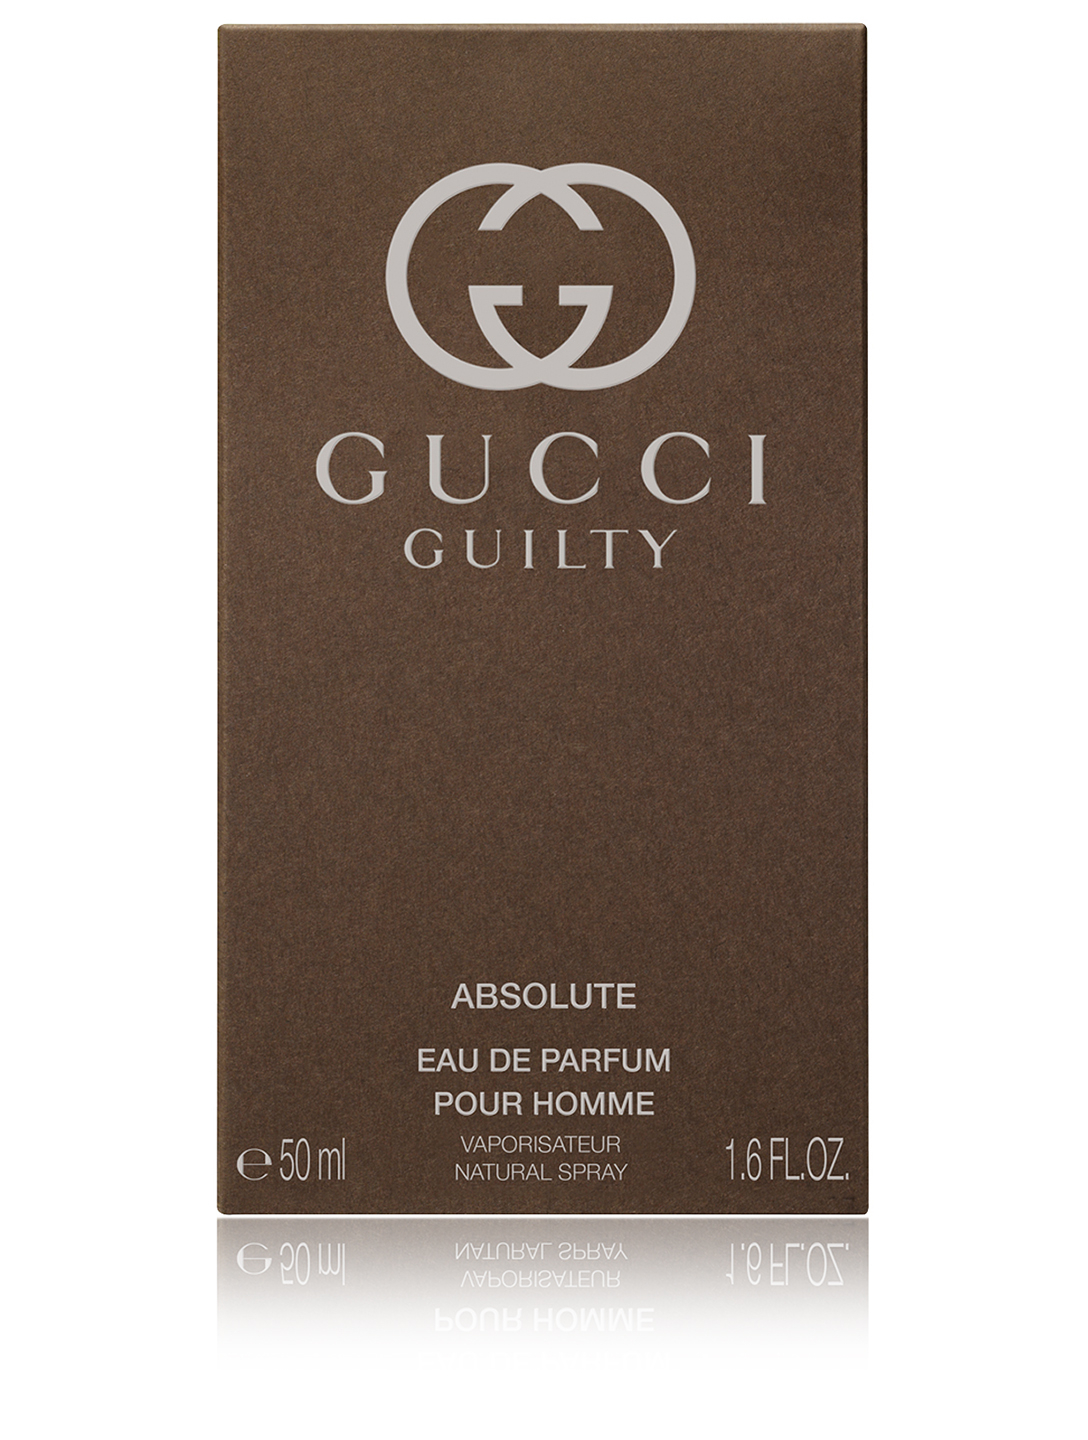 GUCCI Gucci Guilty Absolute Eau de Parfum For Him Beauty